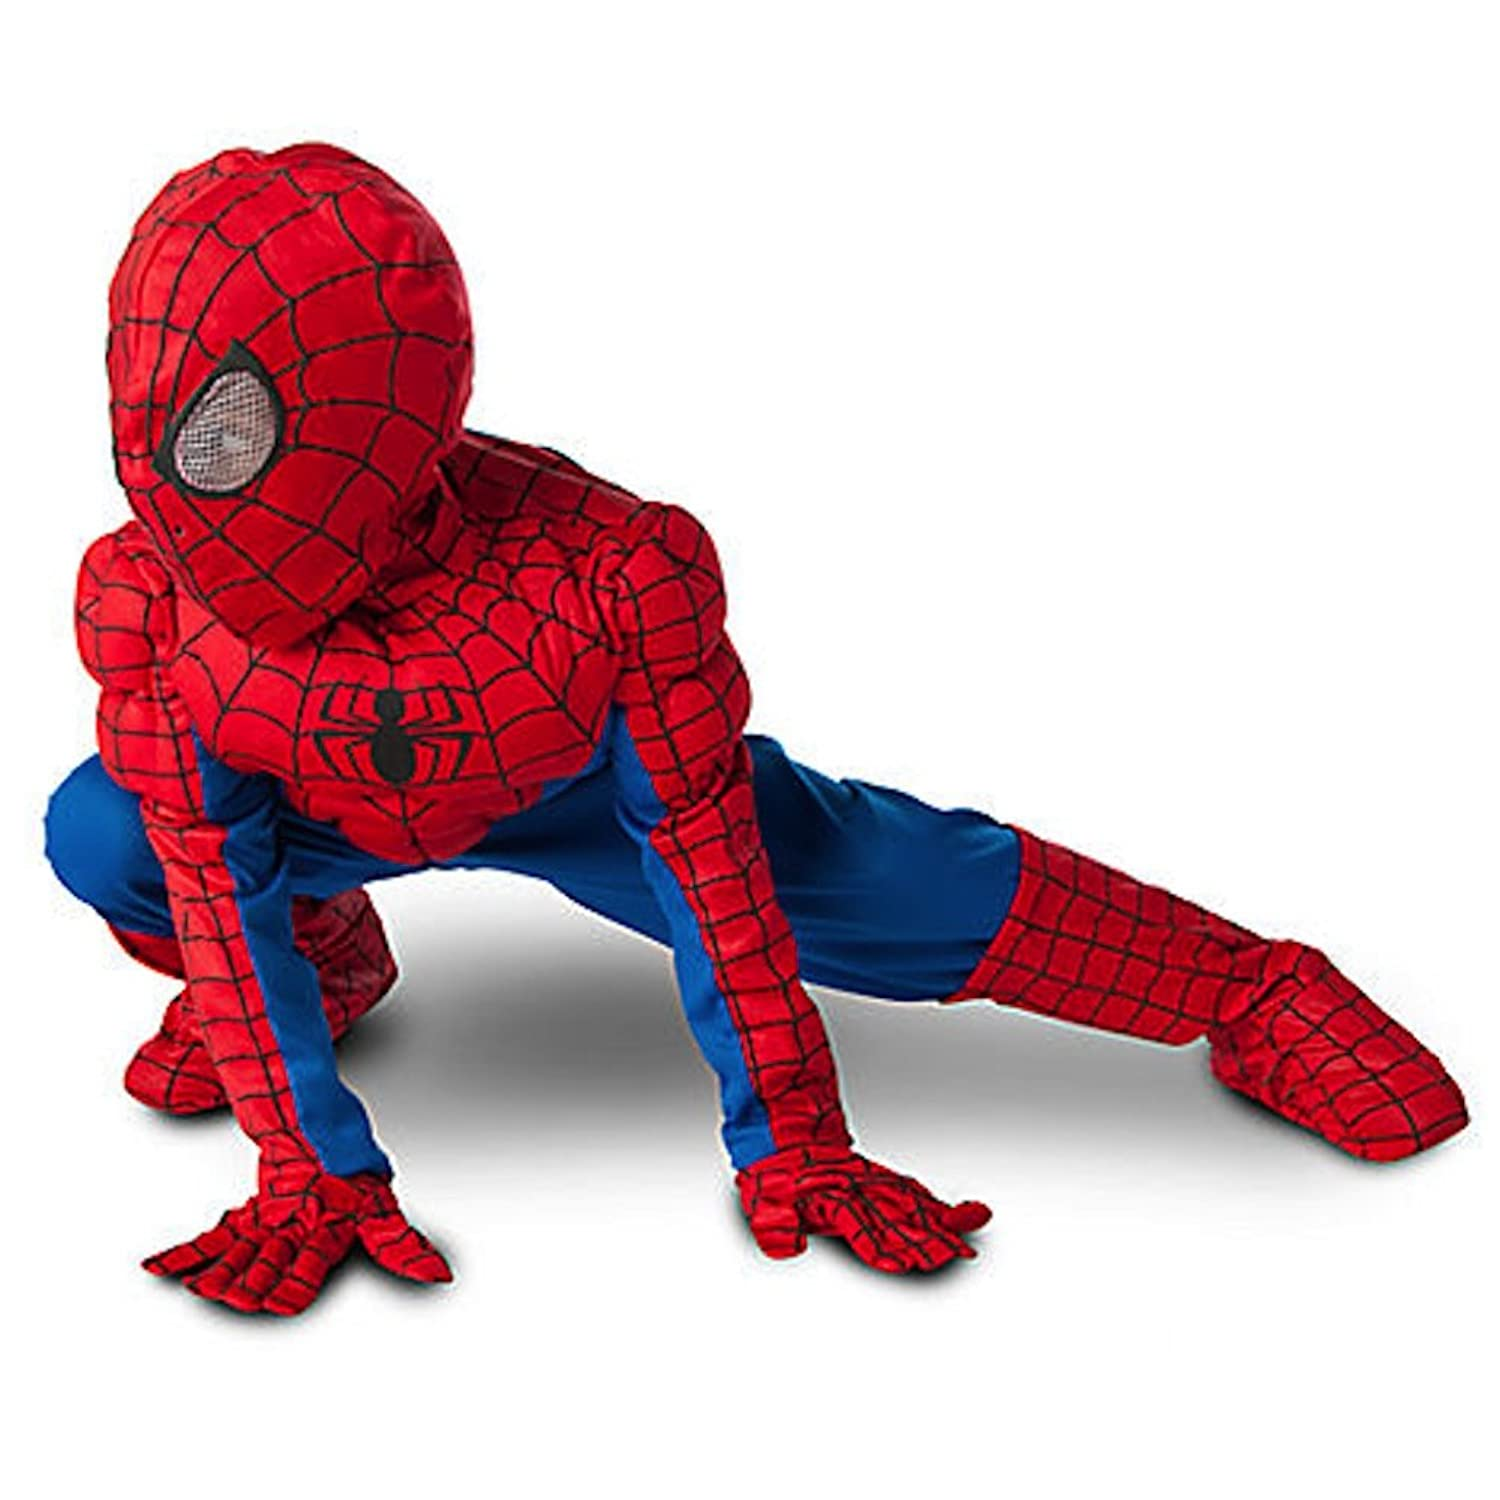 61G9ECymUsL._UL1500_ amazon com ultimate spider man muscle child costume toys & games  at crackthecode.co